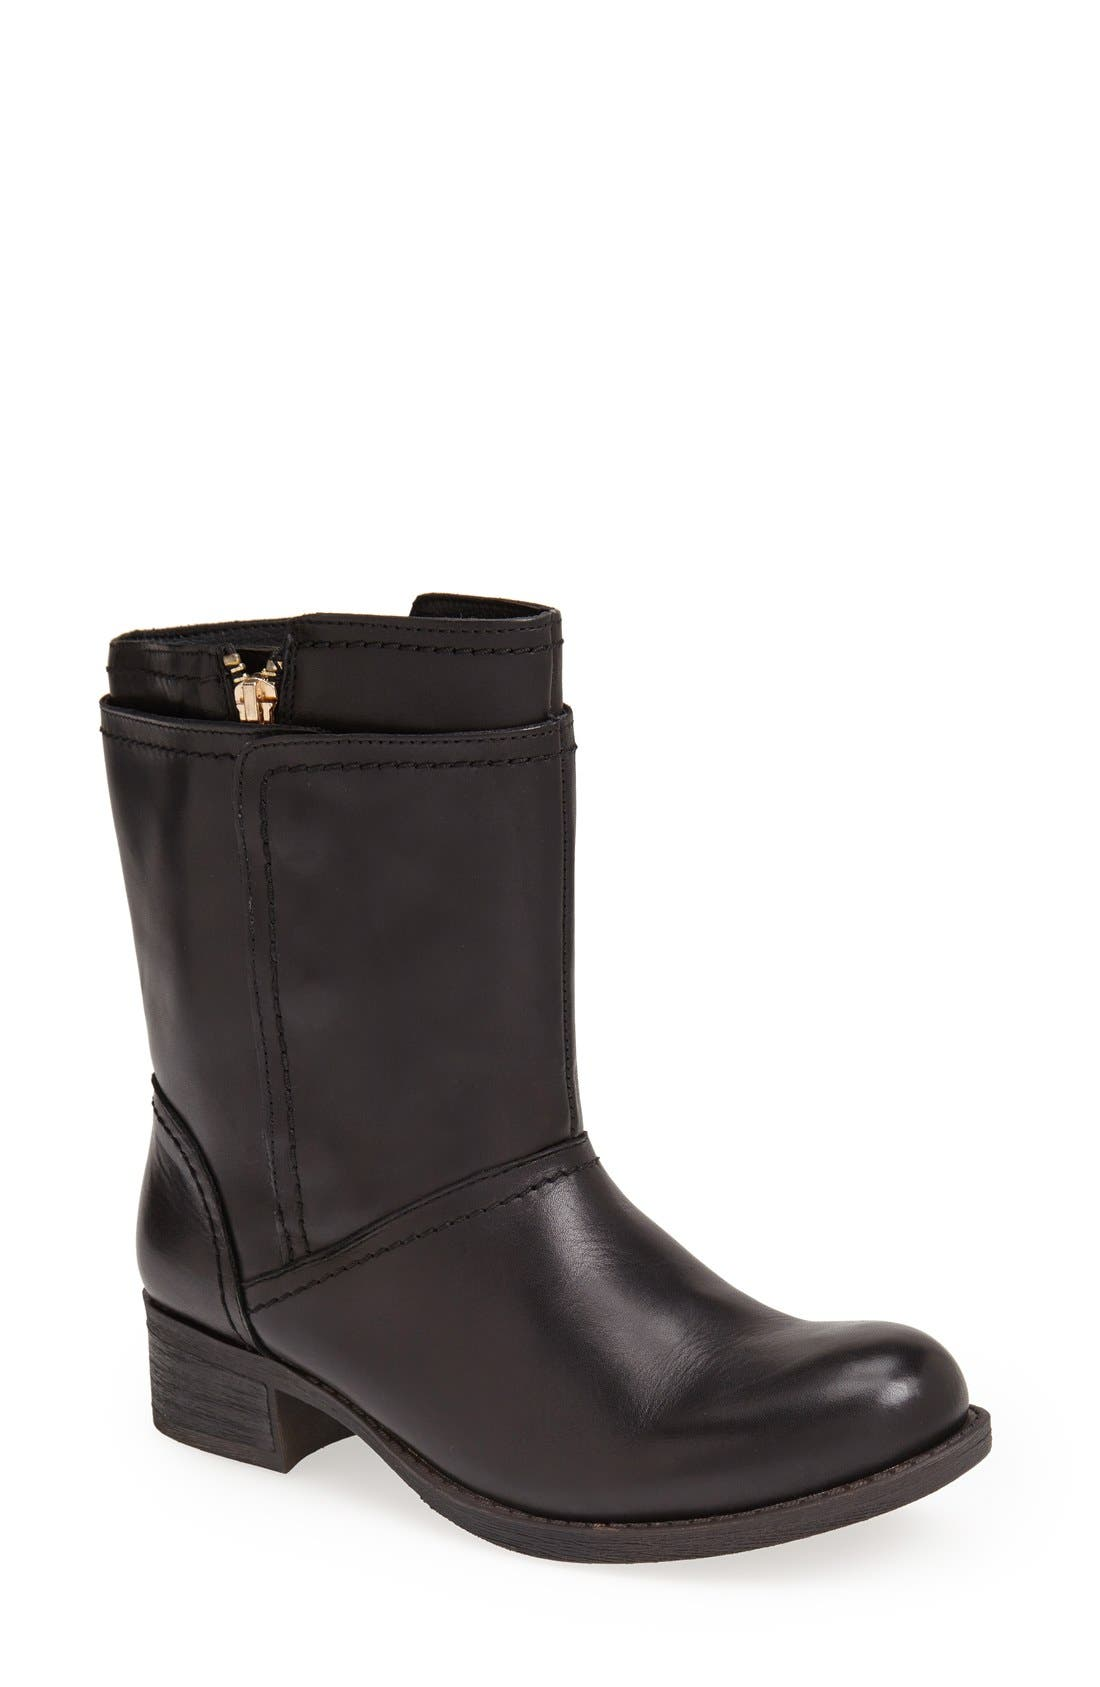 Alternate Image 1 Selected - BCBGeneration 'Everest' Leather Boot (Women)